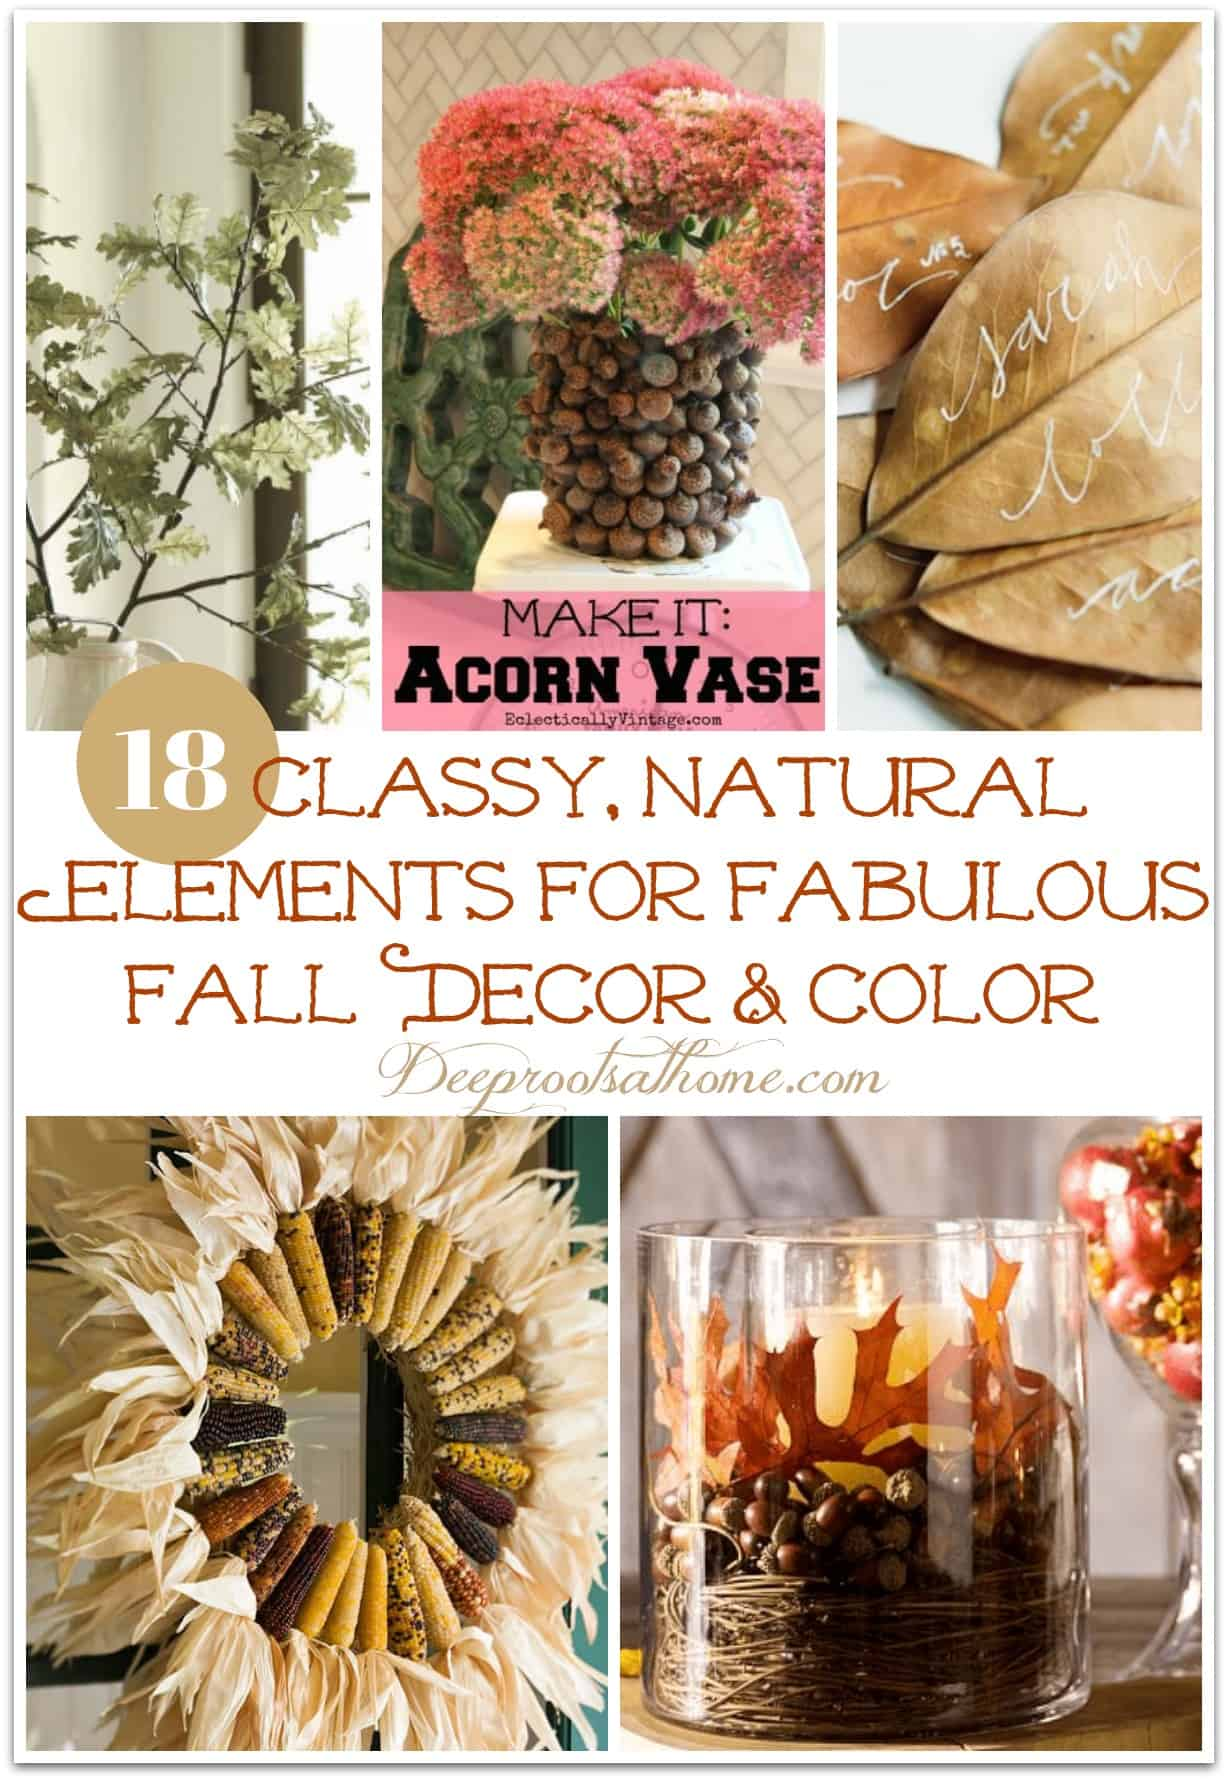 18 Classy, Natural Elements for Fabulous Fall Decor & Color. Fall decor of nature's materials.